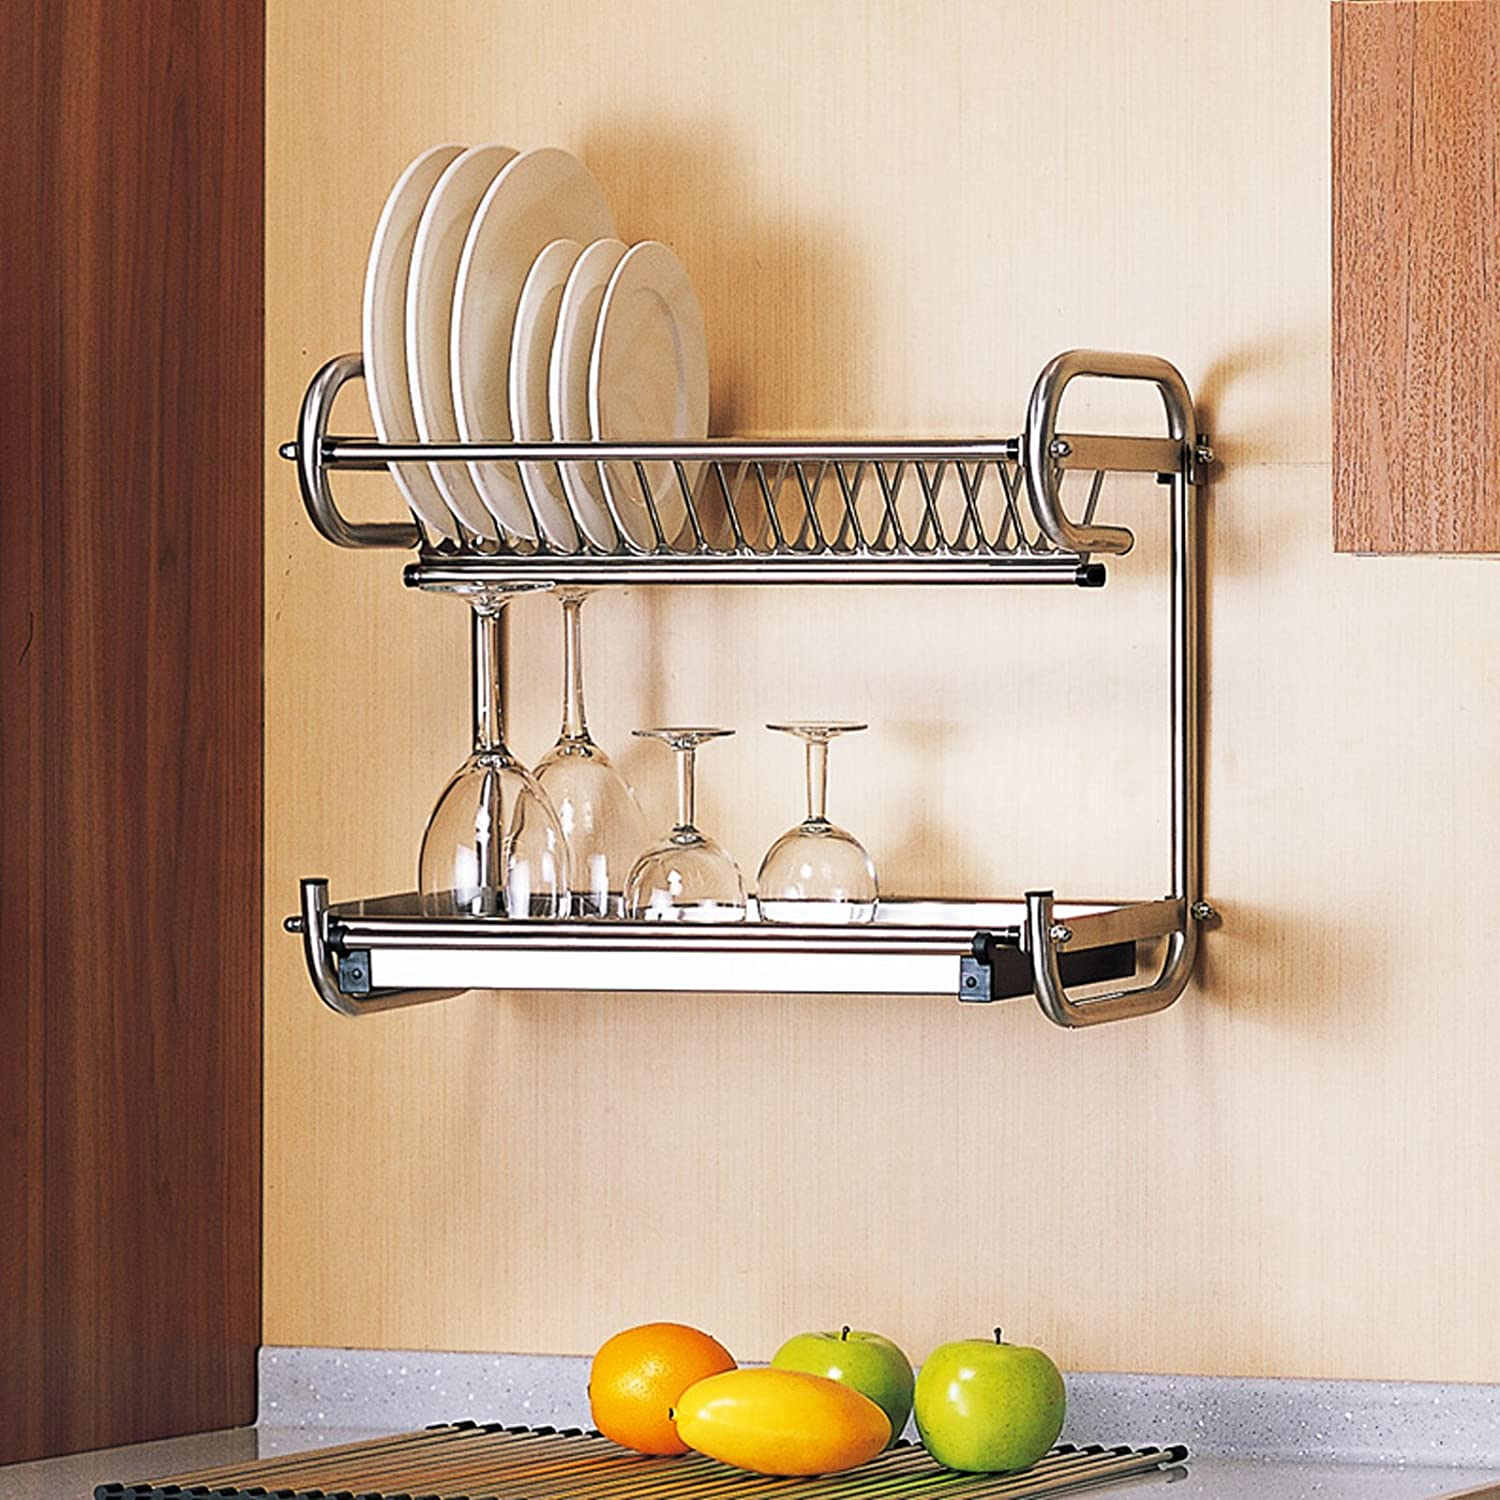 Amazon.com Probrico Wall Mounted Dish Drainer Rack Stainless Steel 17.6 inch Dish Drying Rack Plates Bowls Storage Organizer Holder Kitchen u0026 Dining : wall hanger for plates - pezcame.com